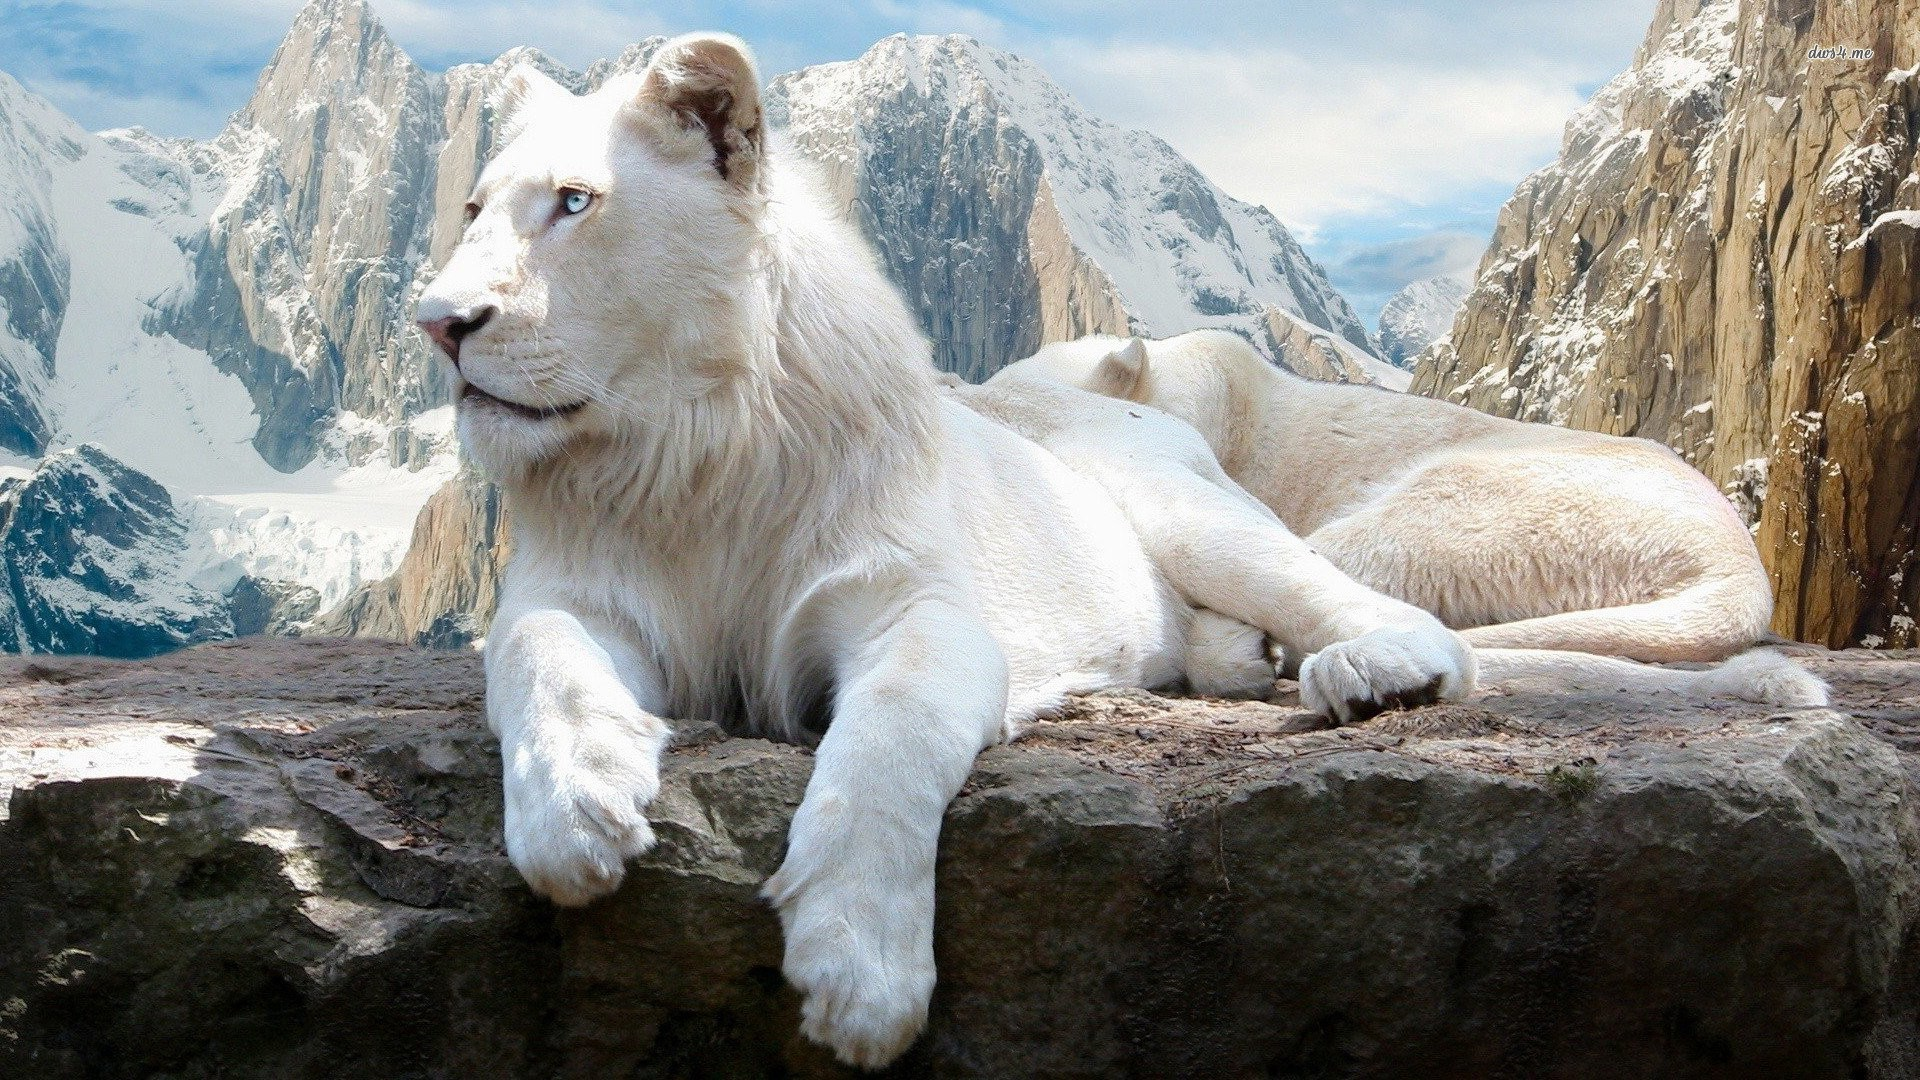 2048x2048 White Lion Ipad Air Hd 4k Wallpapers Images: Lion Wallpaper (65+ Immagini